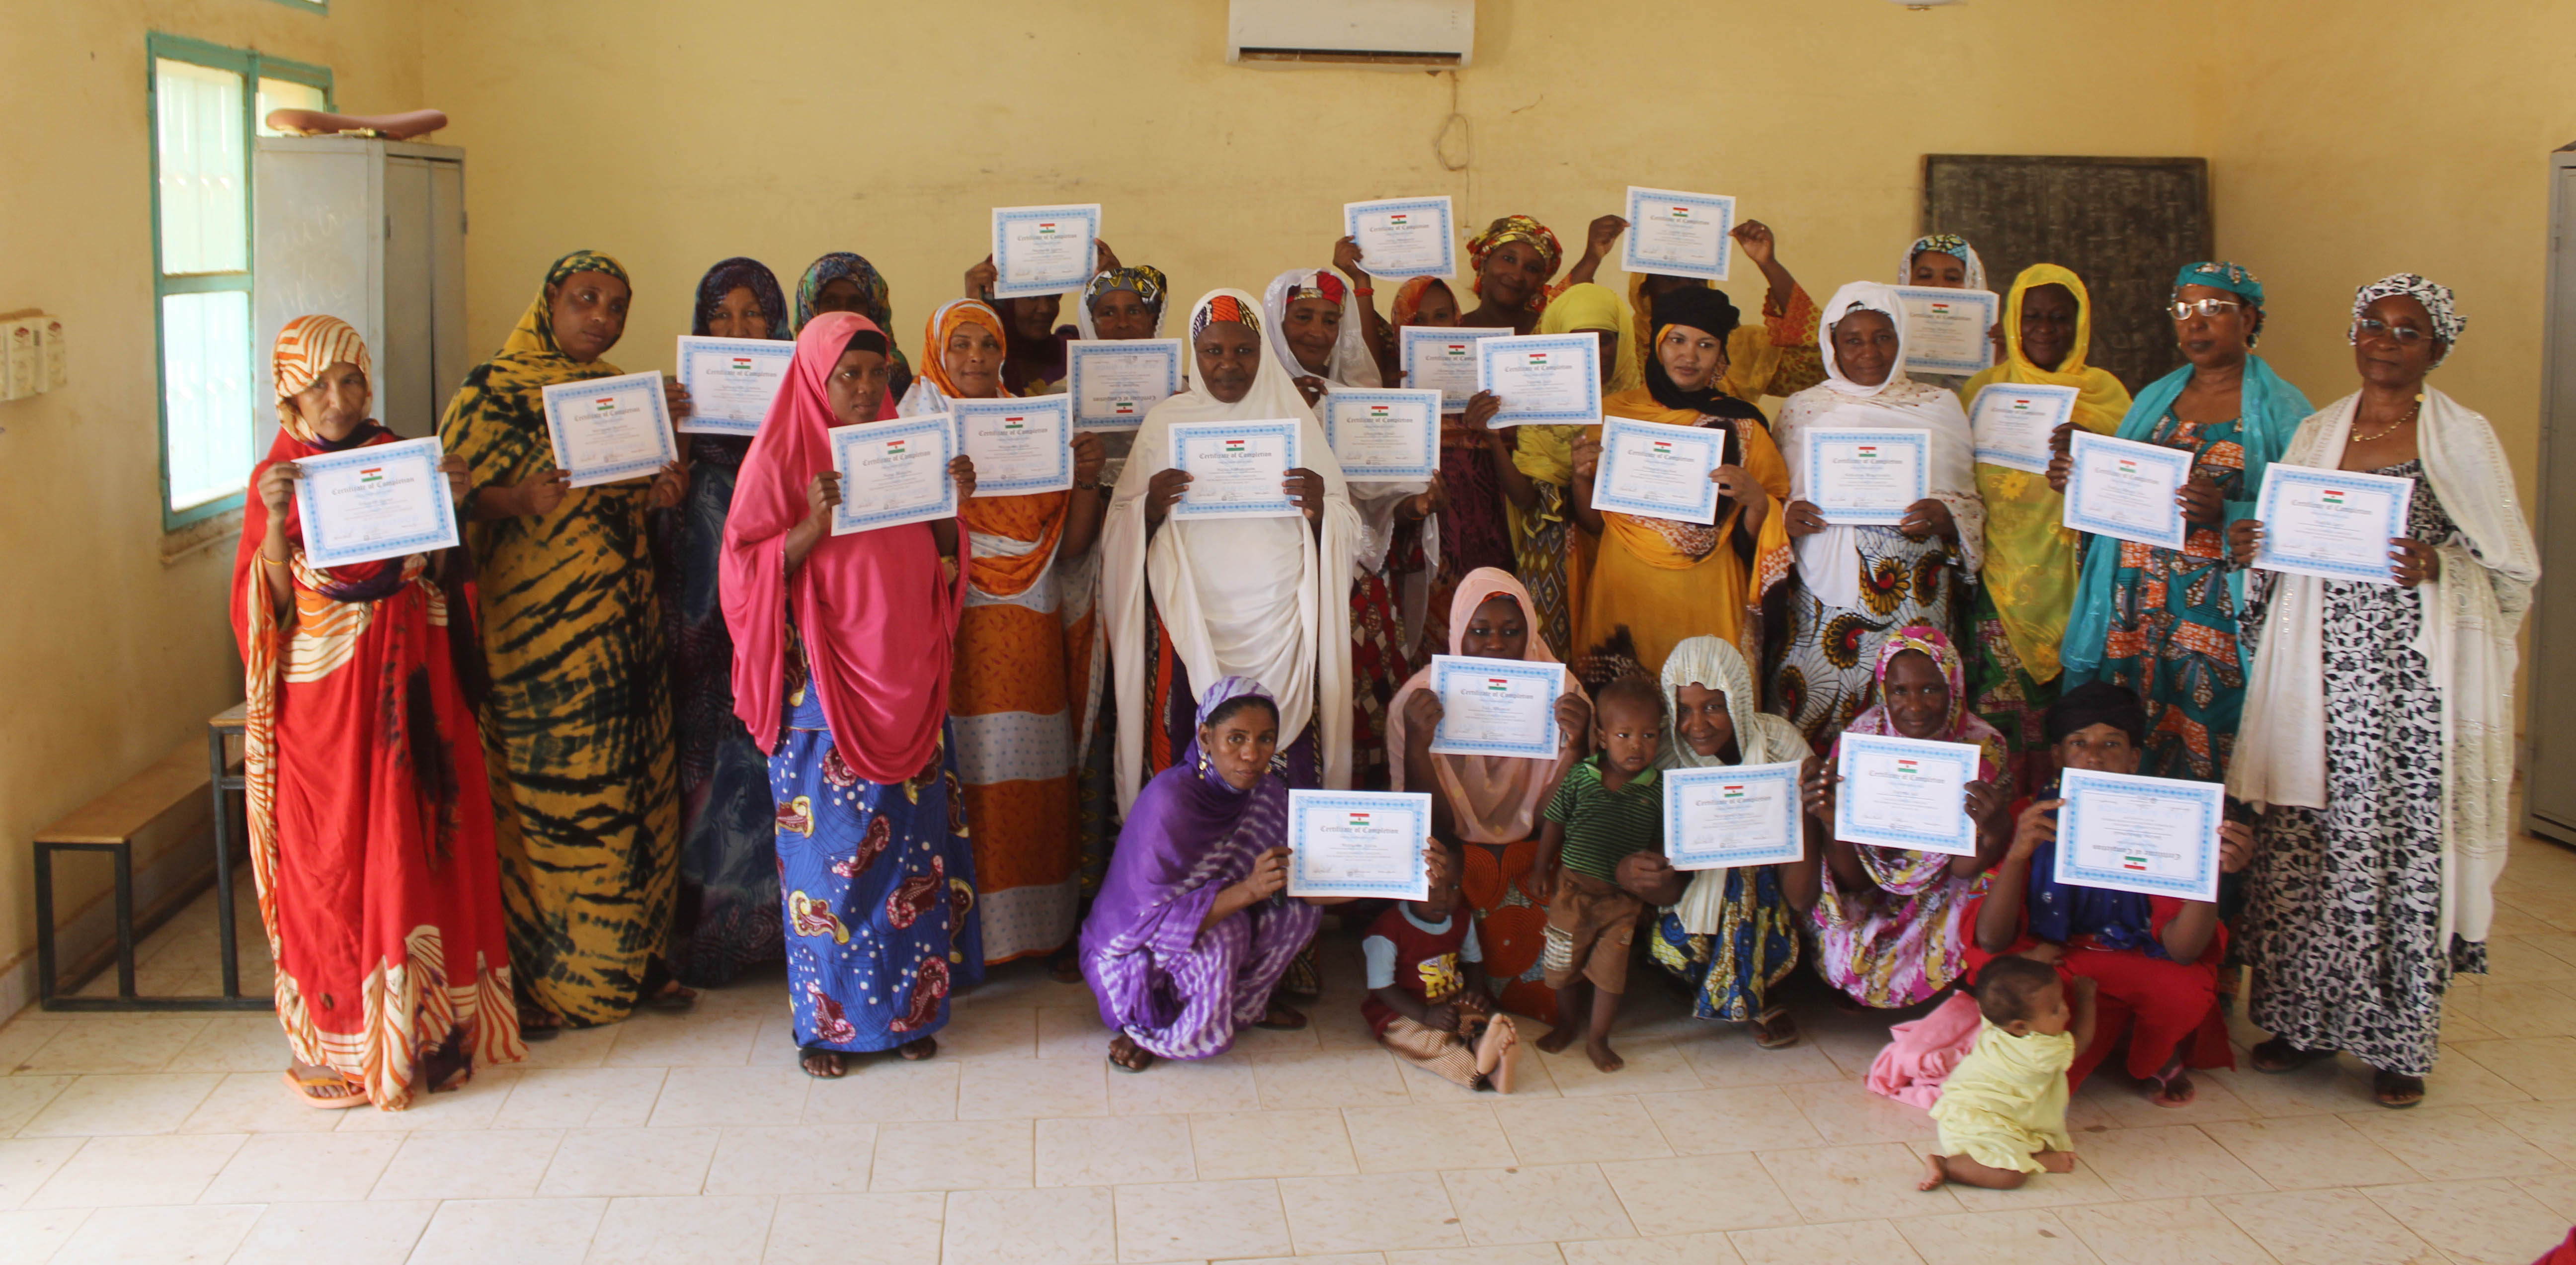 Members of the Association of Nigerien Women Against War pose for a picture with their certificates of completion after a women's hygiene class on Aug. 14, 2017, in Agadez, Niger. The three-day course covered topics such as breast feeding, feminine health and family planning. (Courtesy picture from the 724th Expeditionary Air Base Squadron medical section)